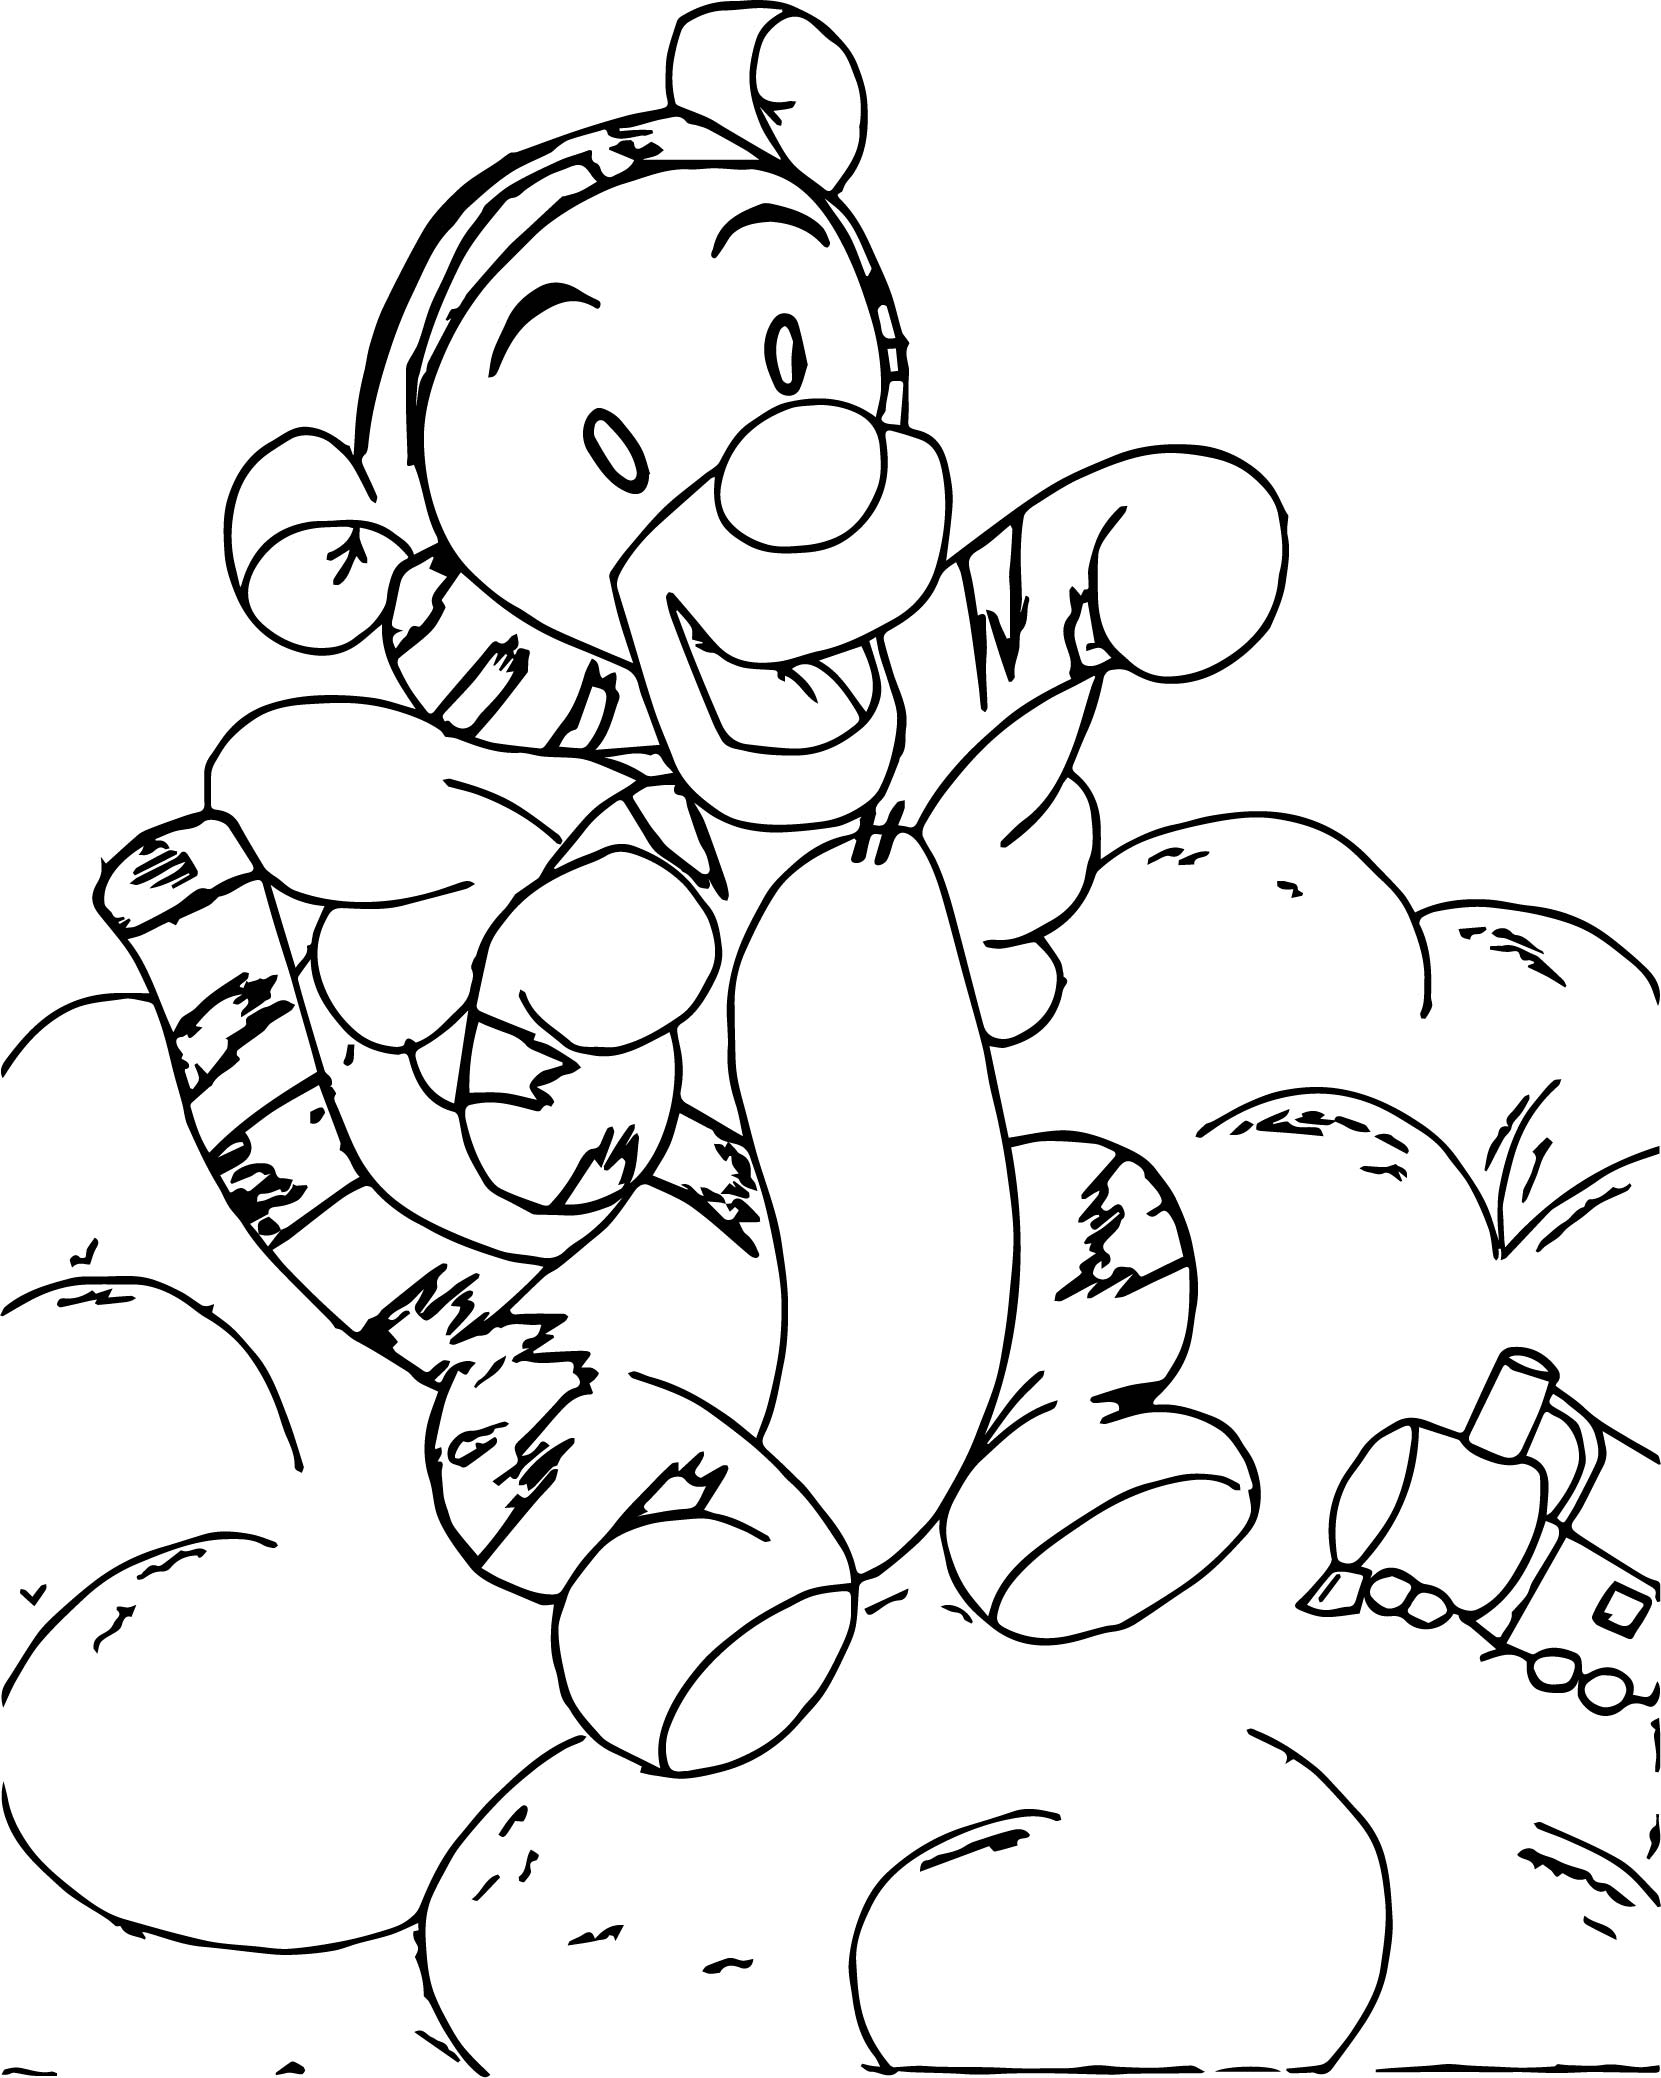 Baby winnie the pooh playing train coloring page for Winnie the pooh baby coloring pages